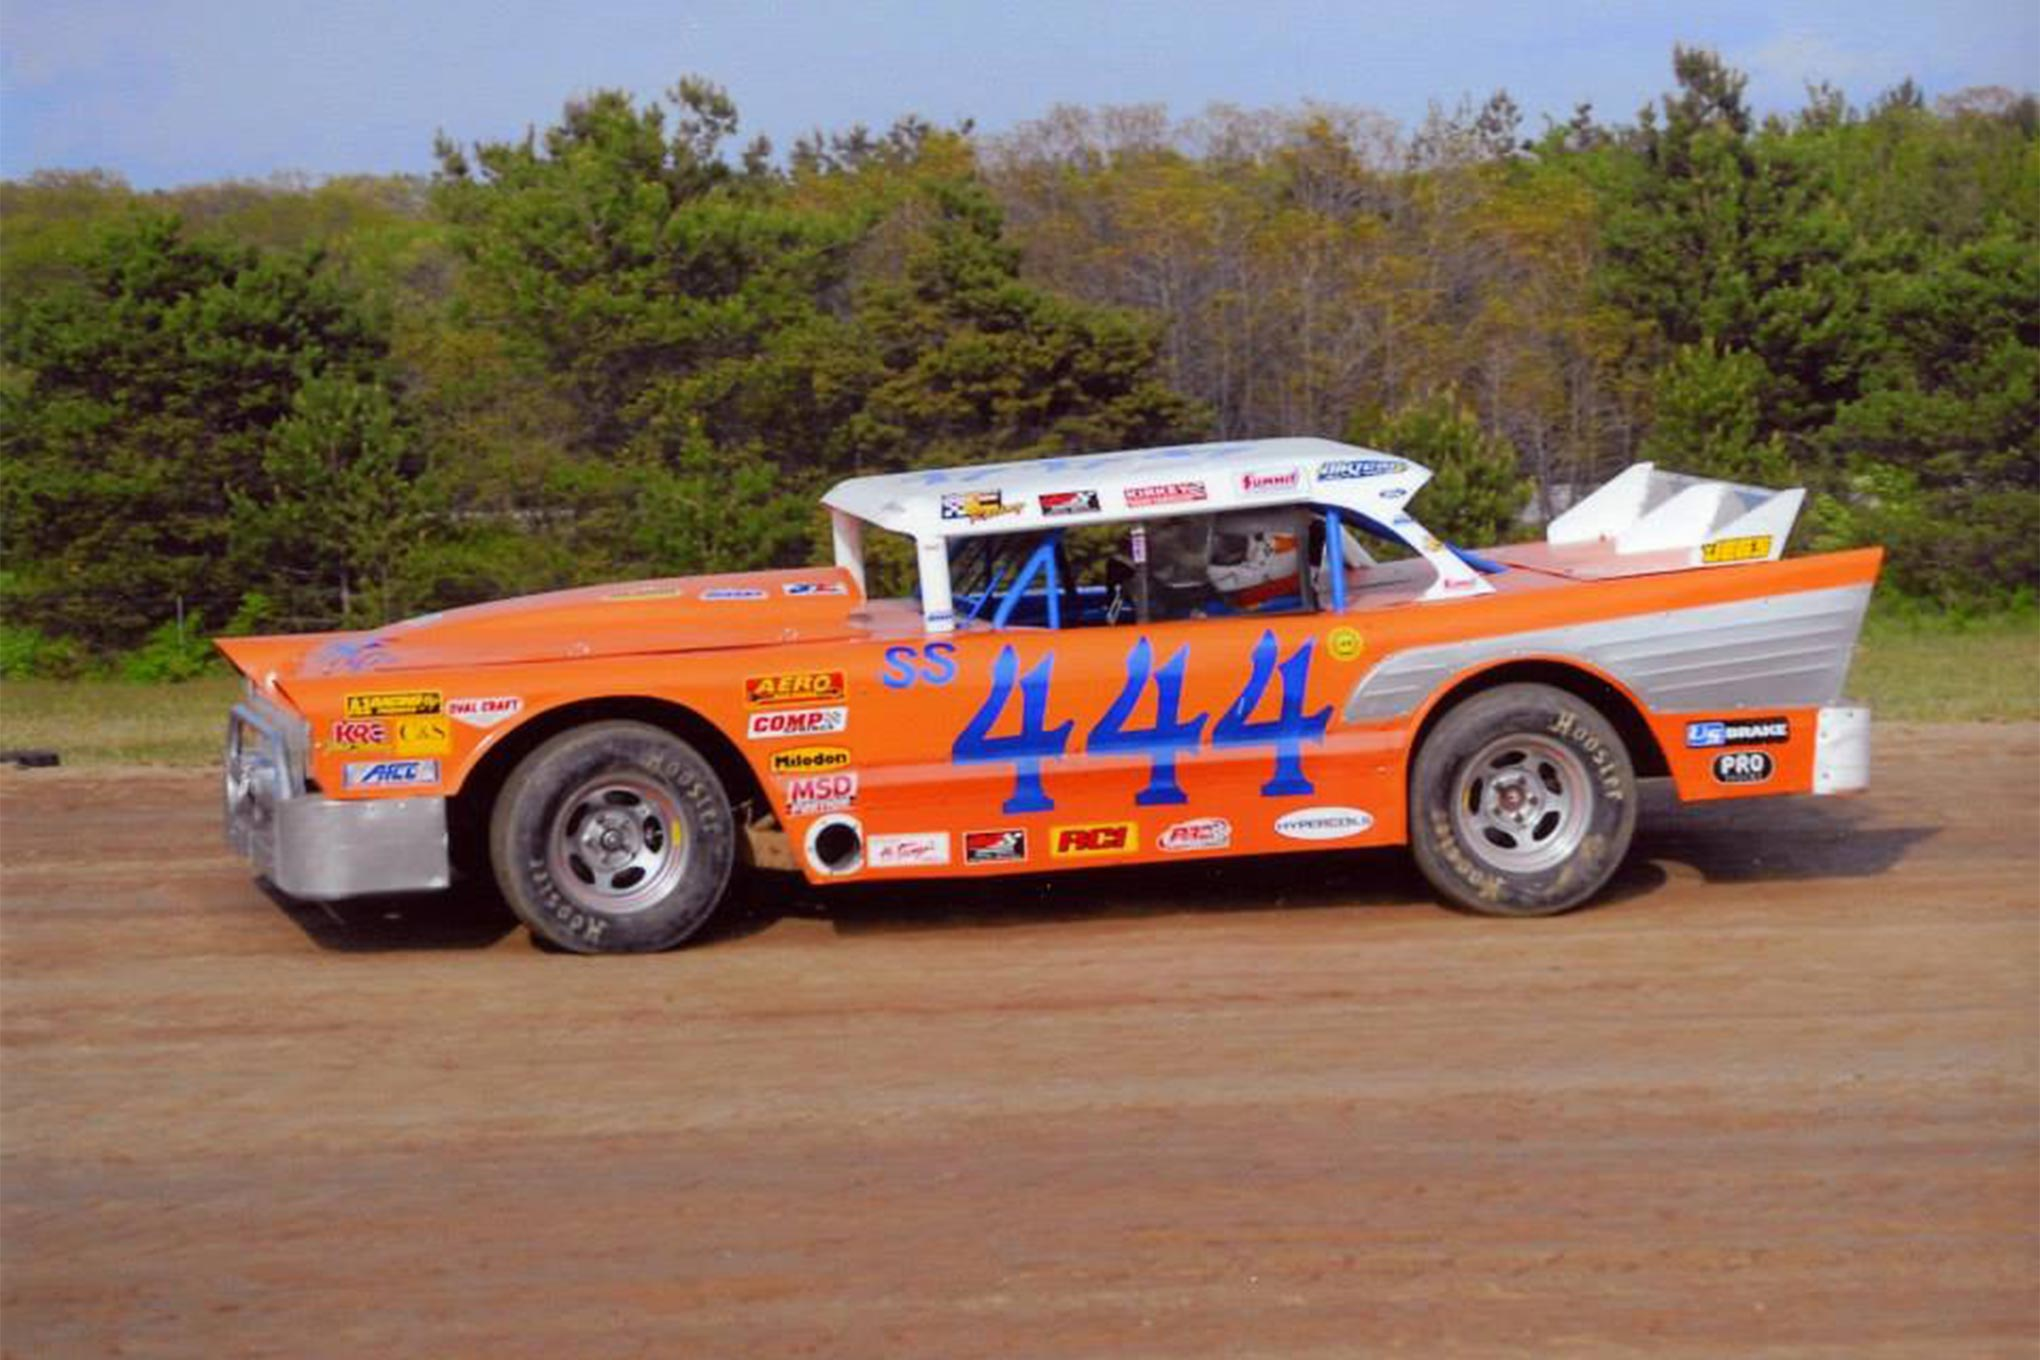 This photo is from the EVANS BROS. Racing Facebook page.  It is the original Evans Brothers '57 body.  Since starting their Facebook page just a few seasons ago, EVANS BROS. Racing has helped many others recreate the classic look.